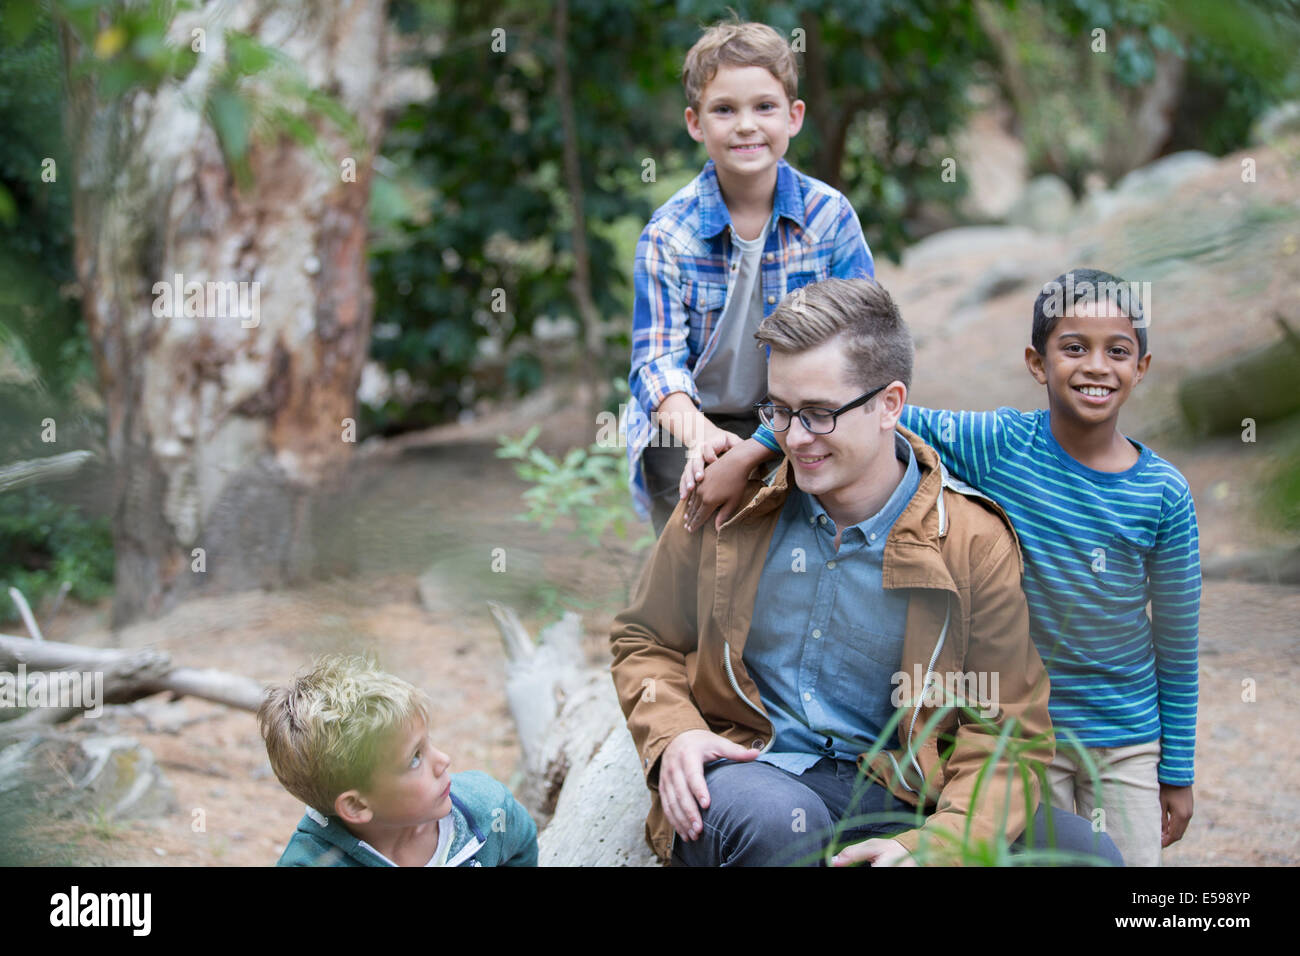 Students and teacher playing in forest - Stock Image